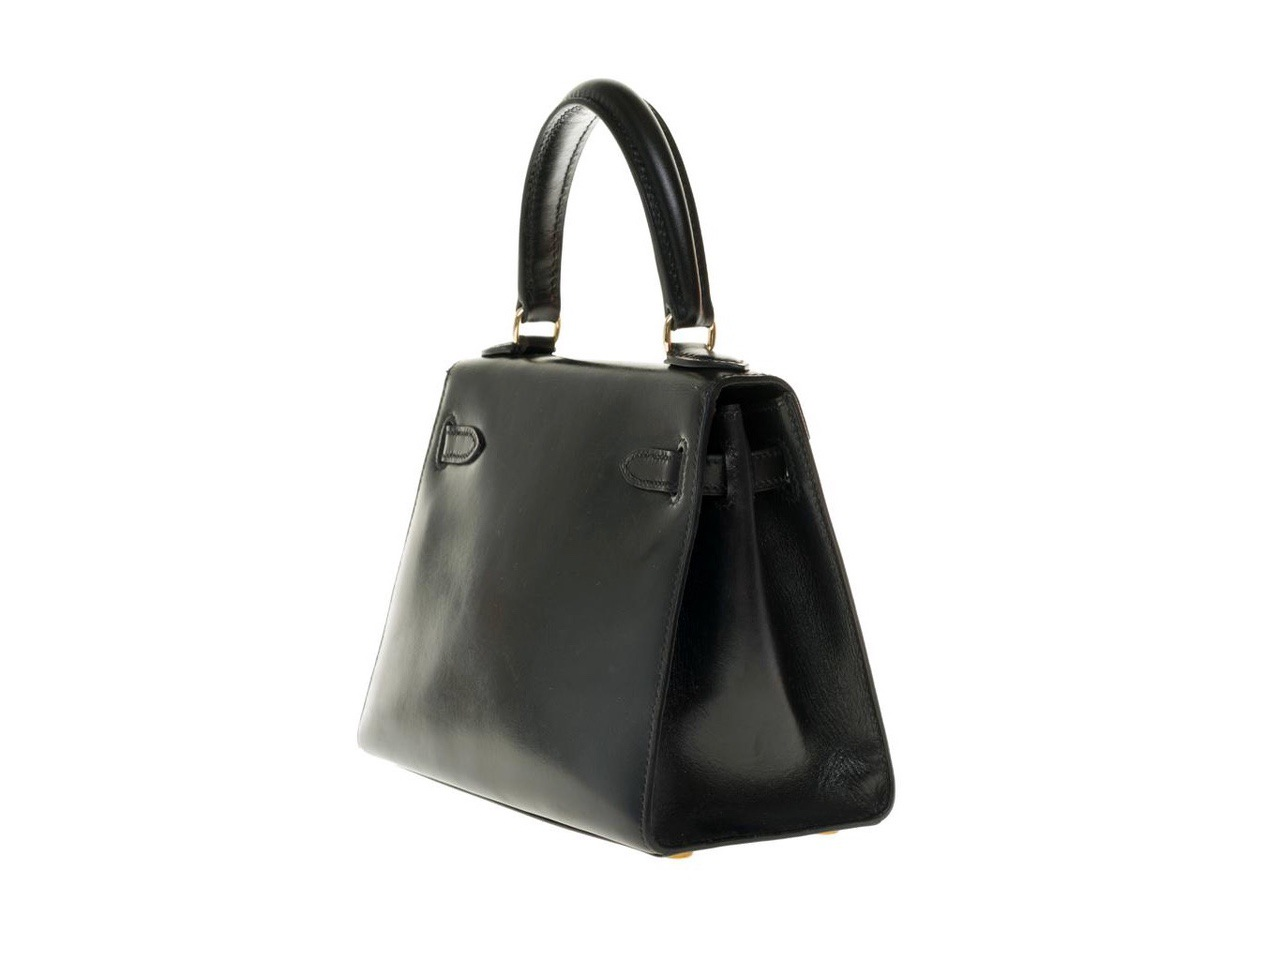 Hermès-Mini-Kelly-20-Black-3-1